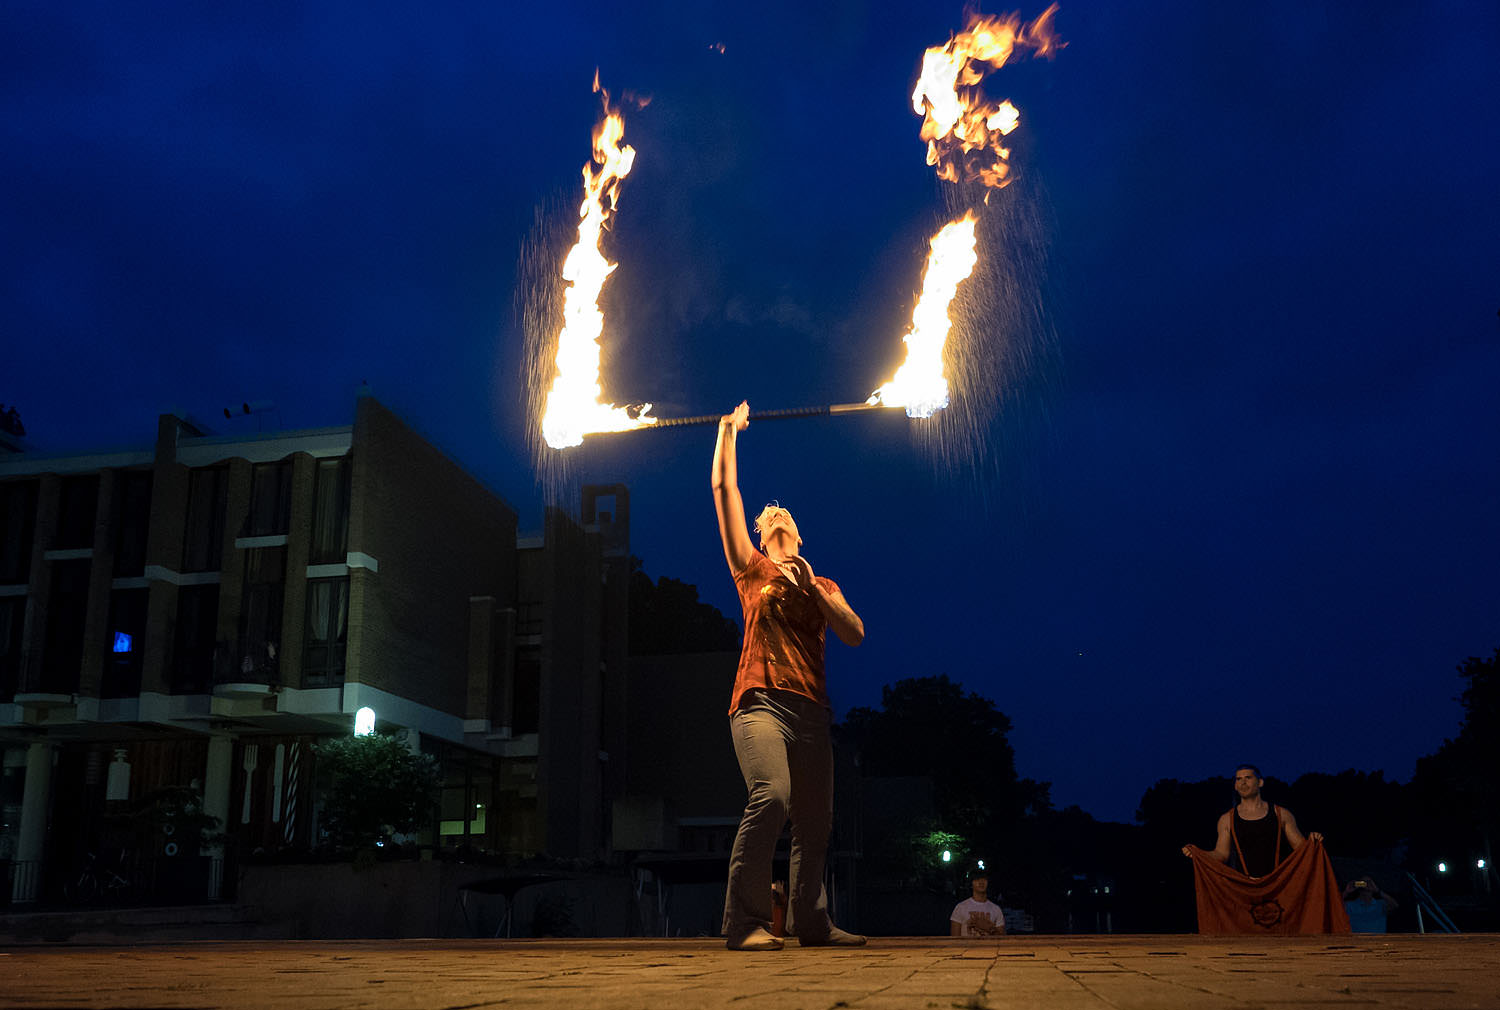 Fire twirler at Lake Anne Plaza